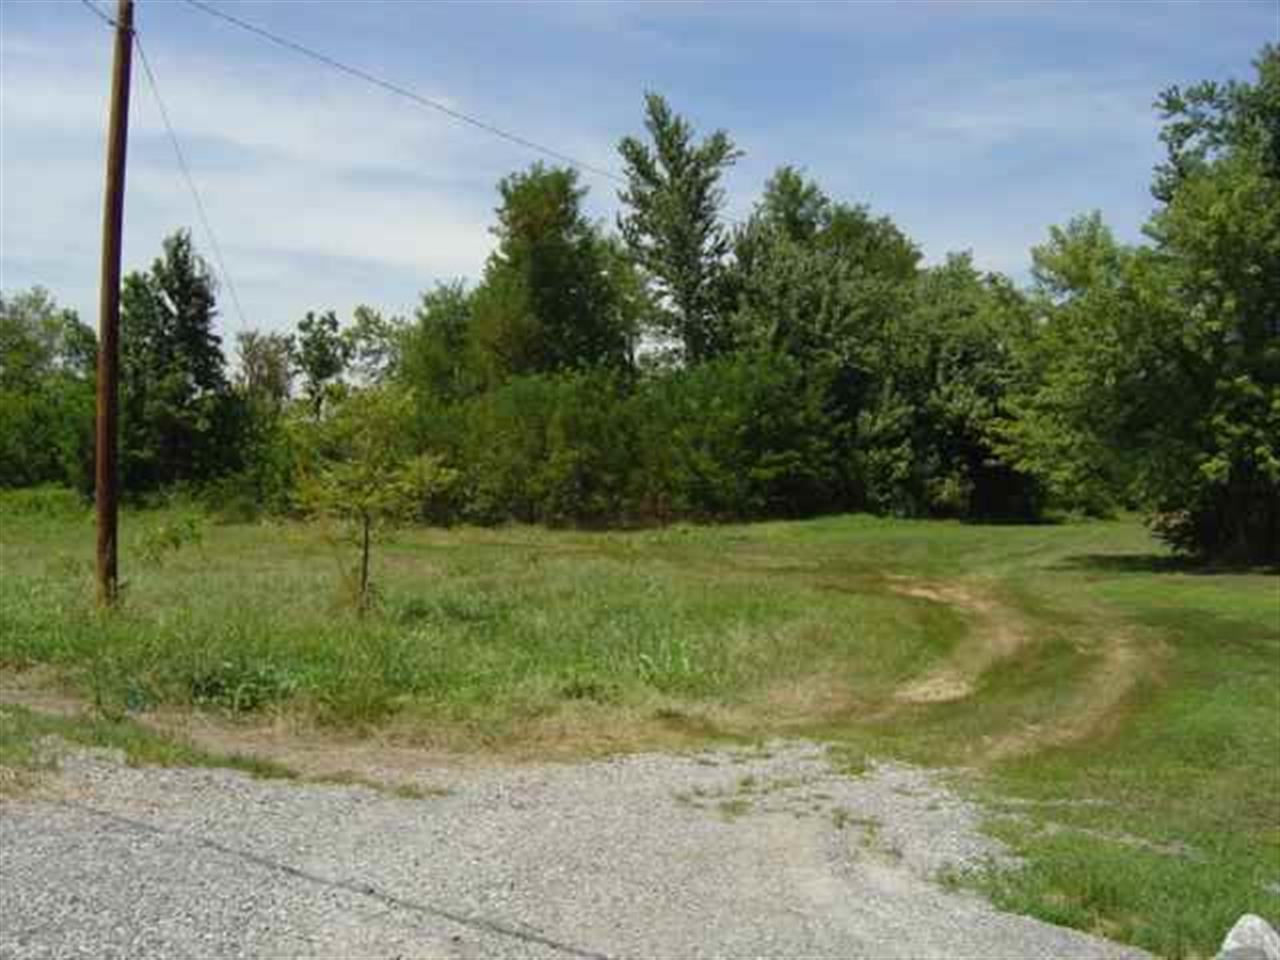 15.21 acres in Benton, Kentucky